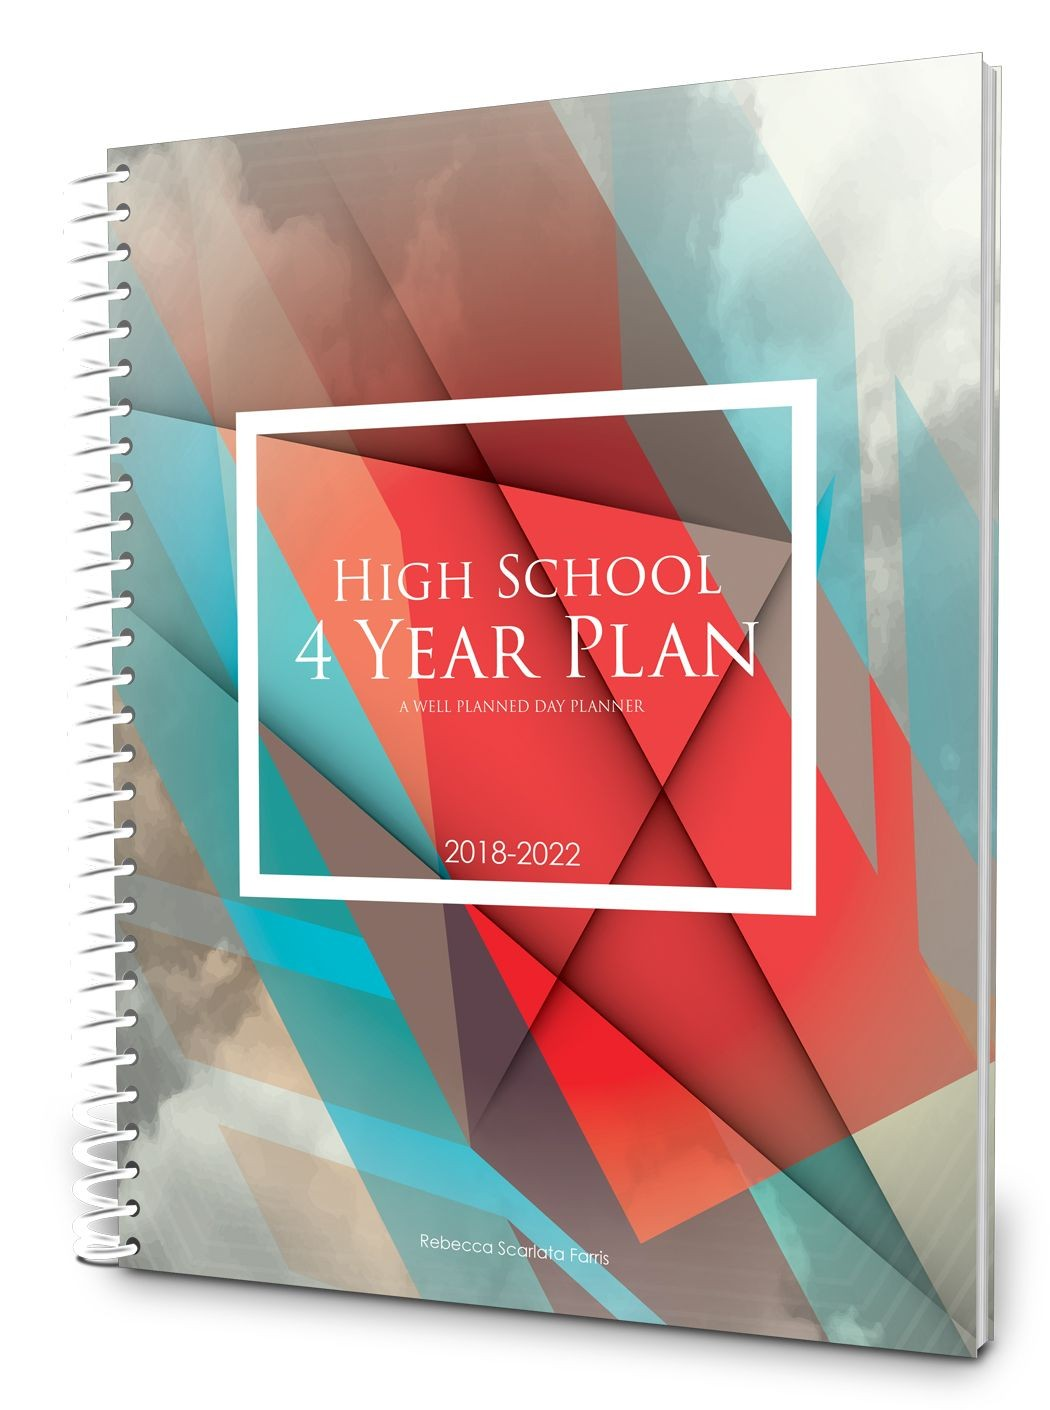 High School 4 Year Plan